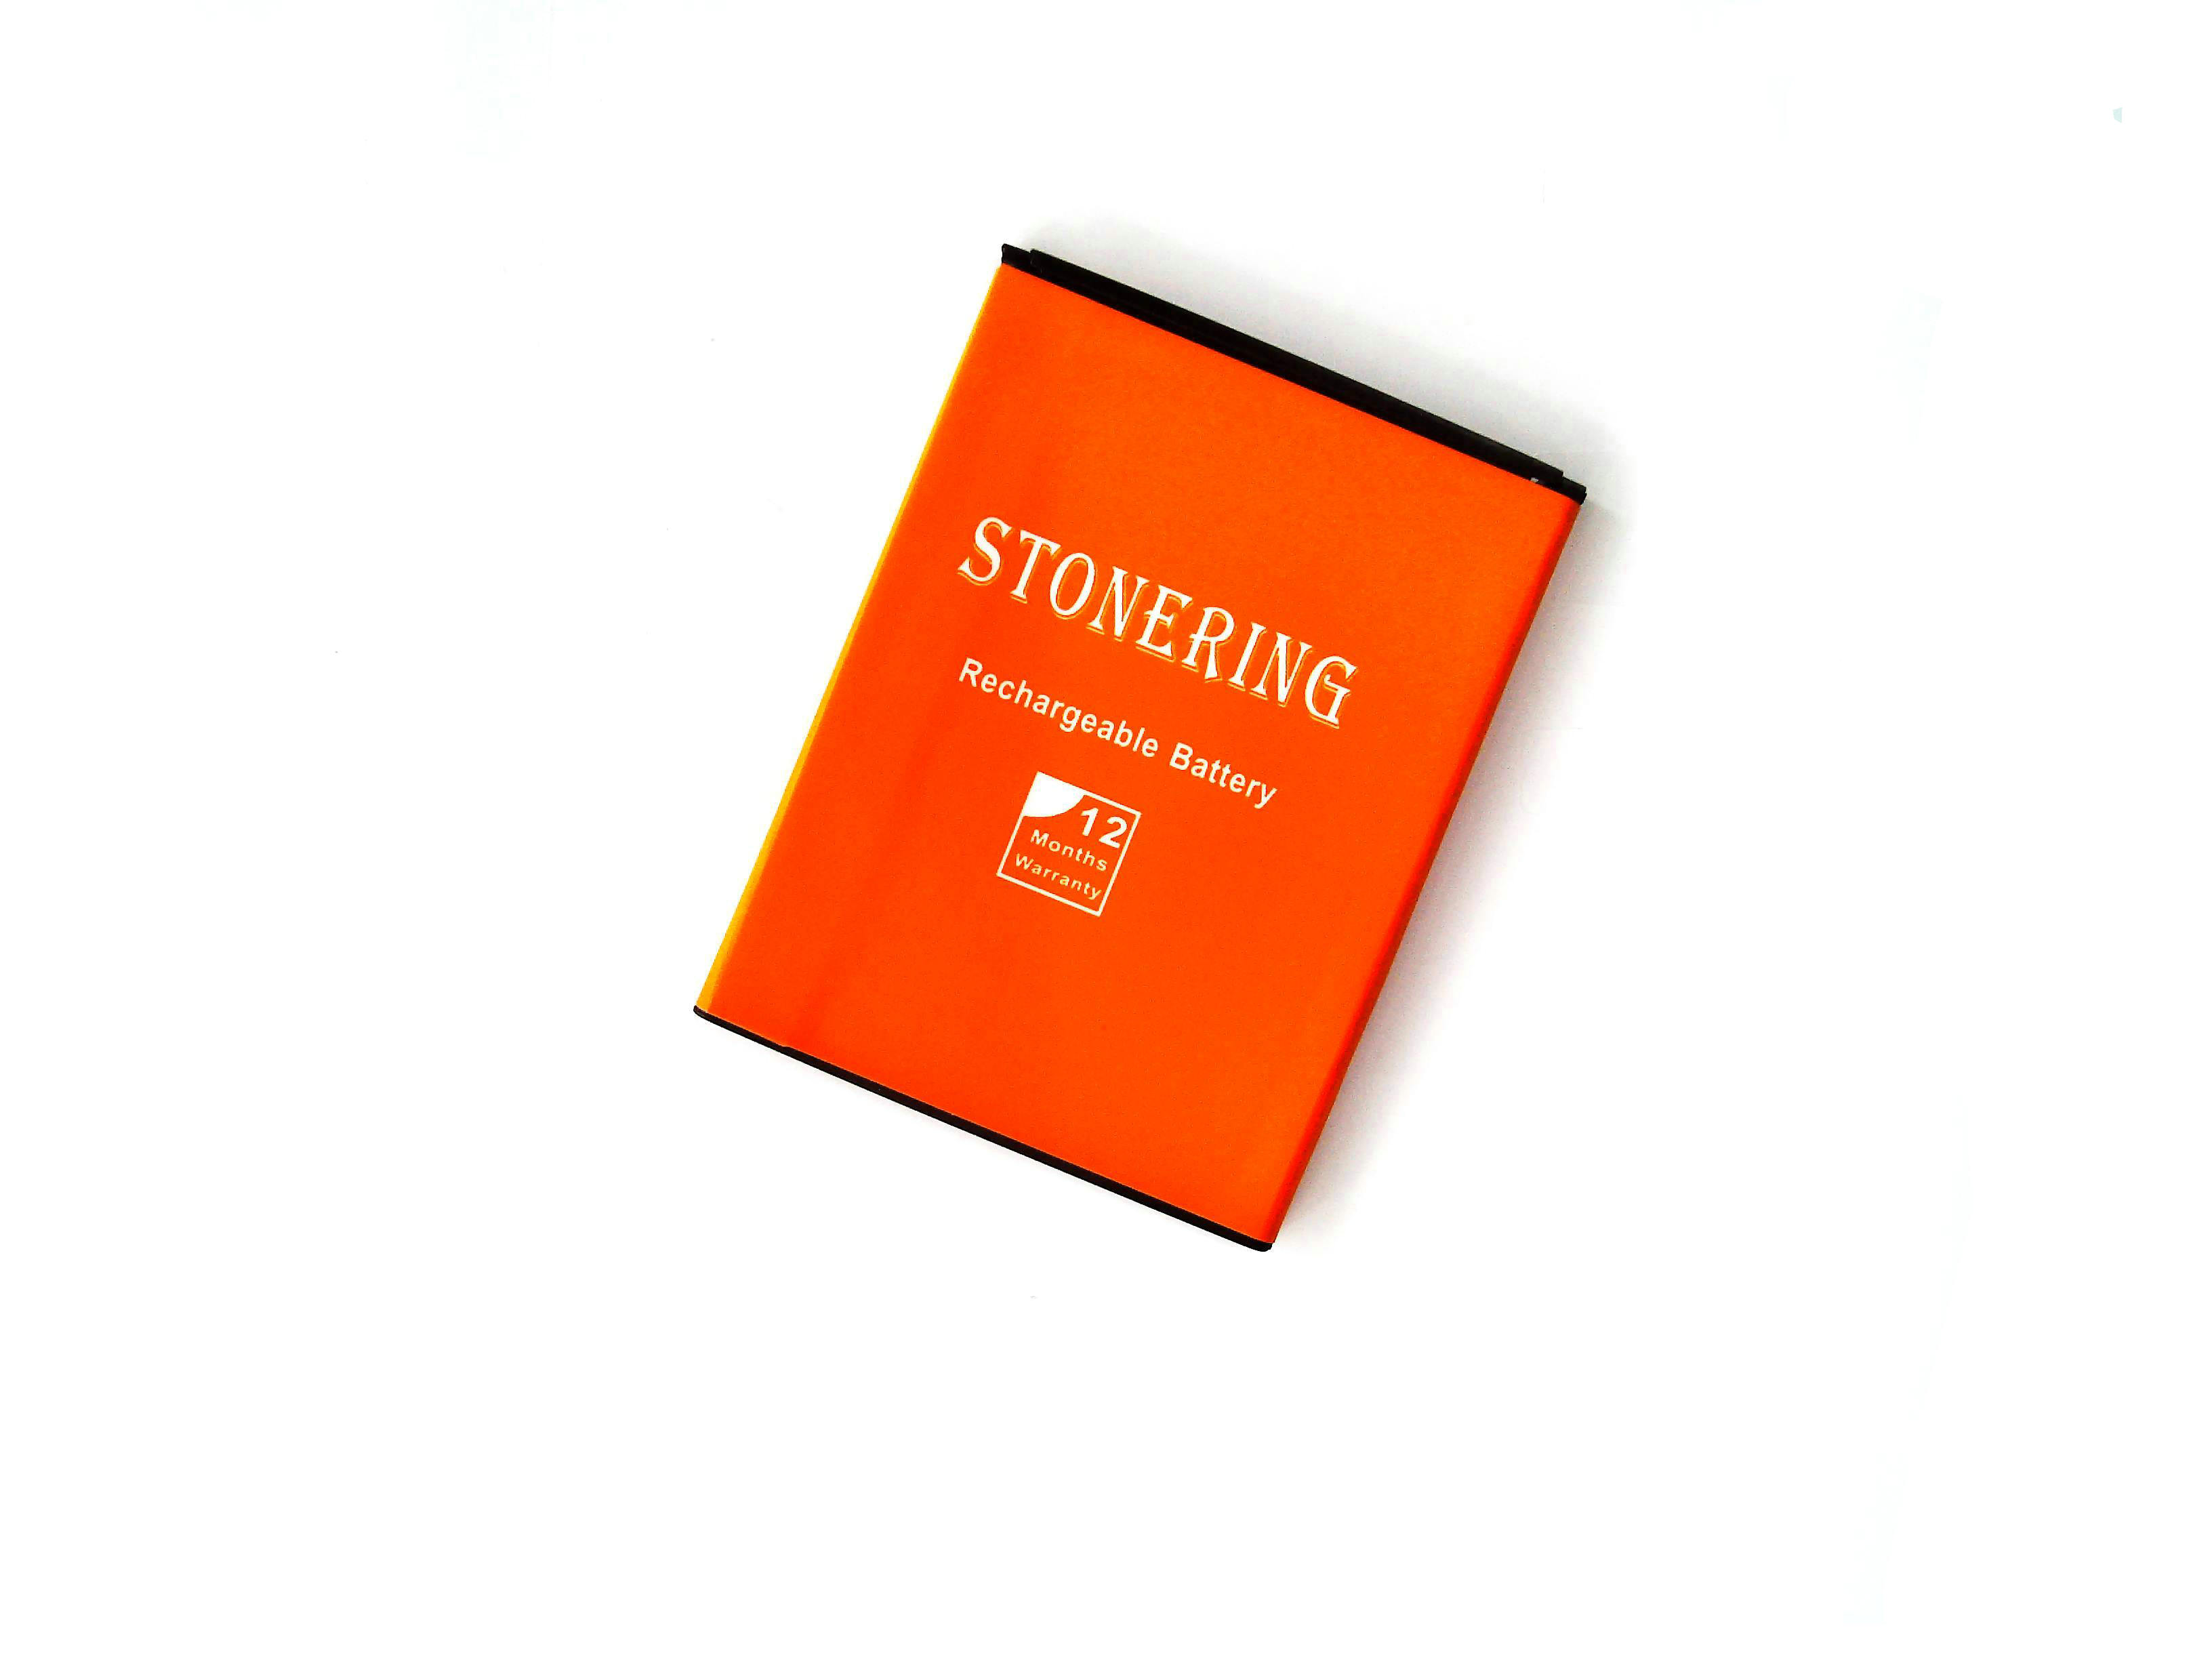 Stonering High Quality D303 1800mAh Battery for Micromax D303 Cell Phone